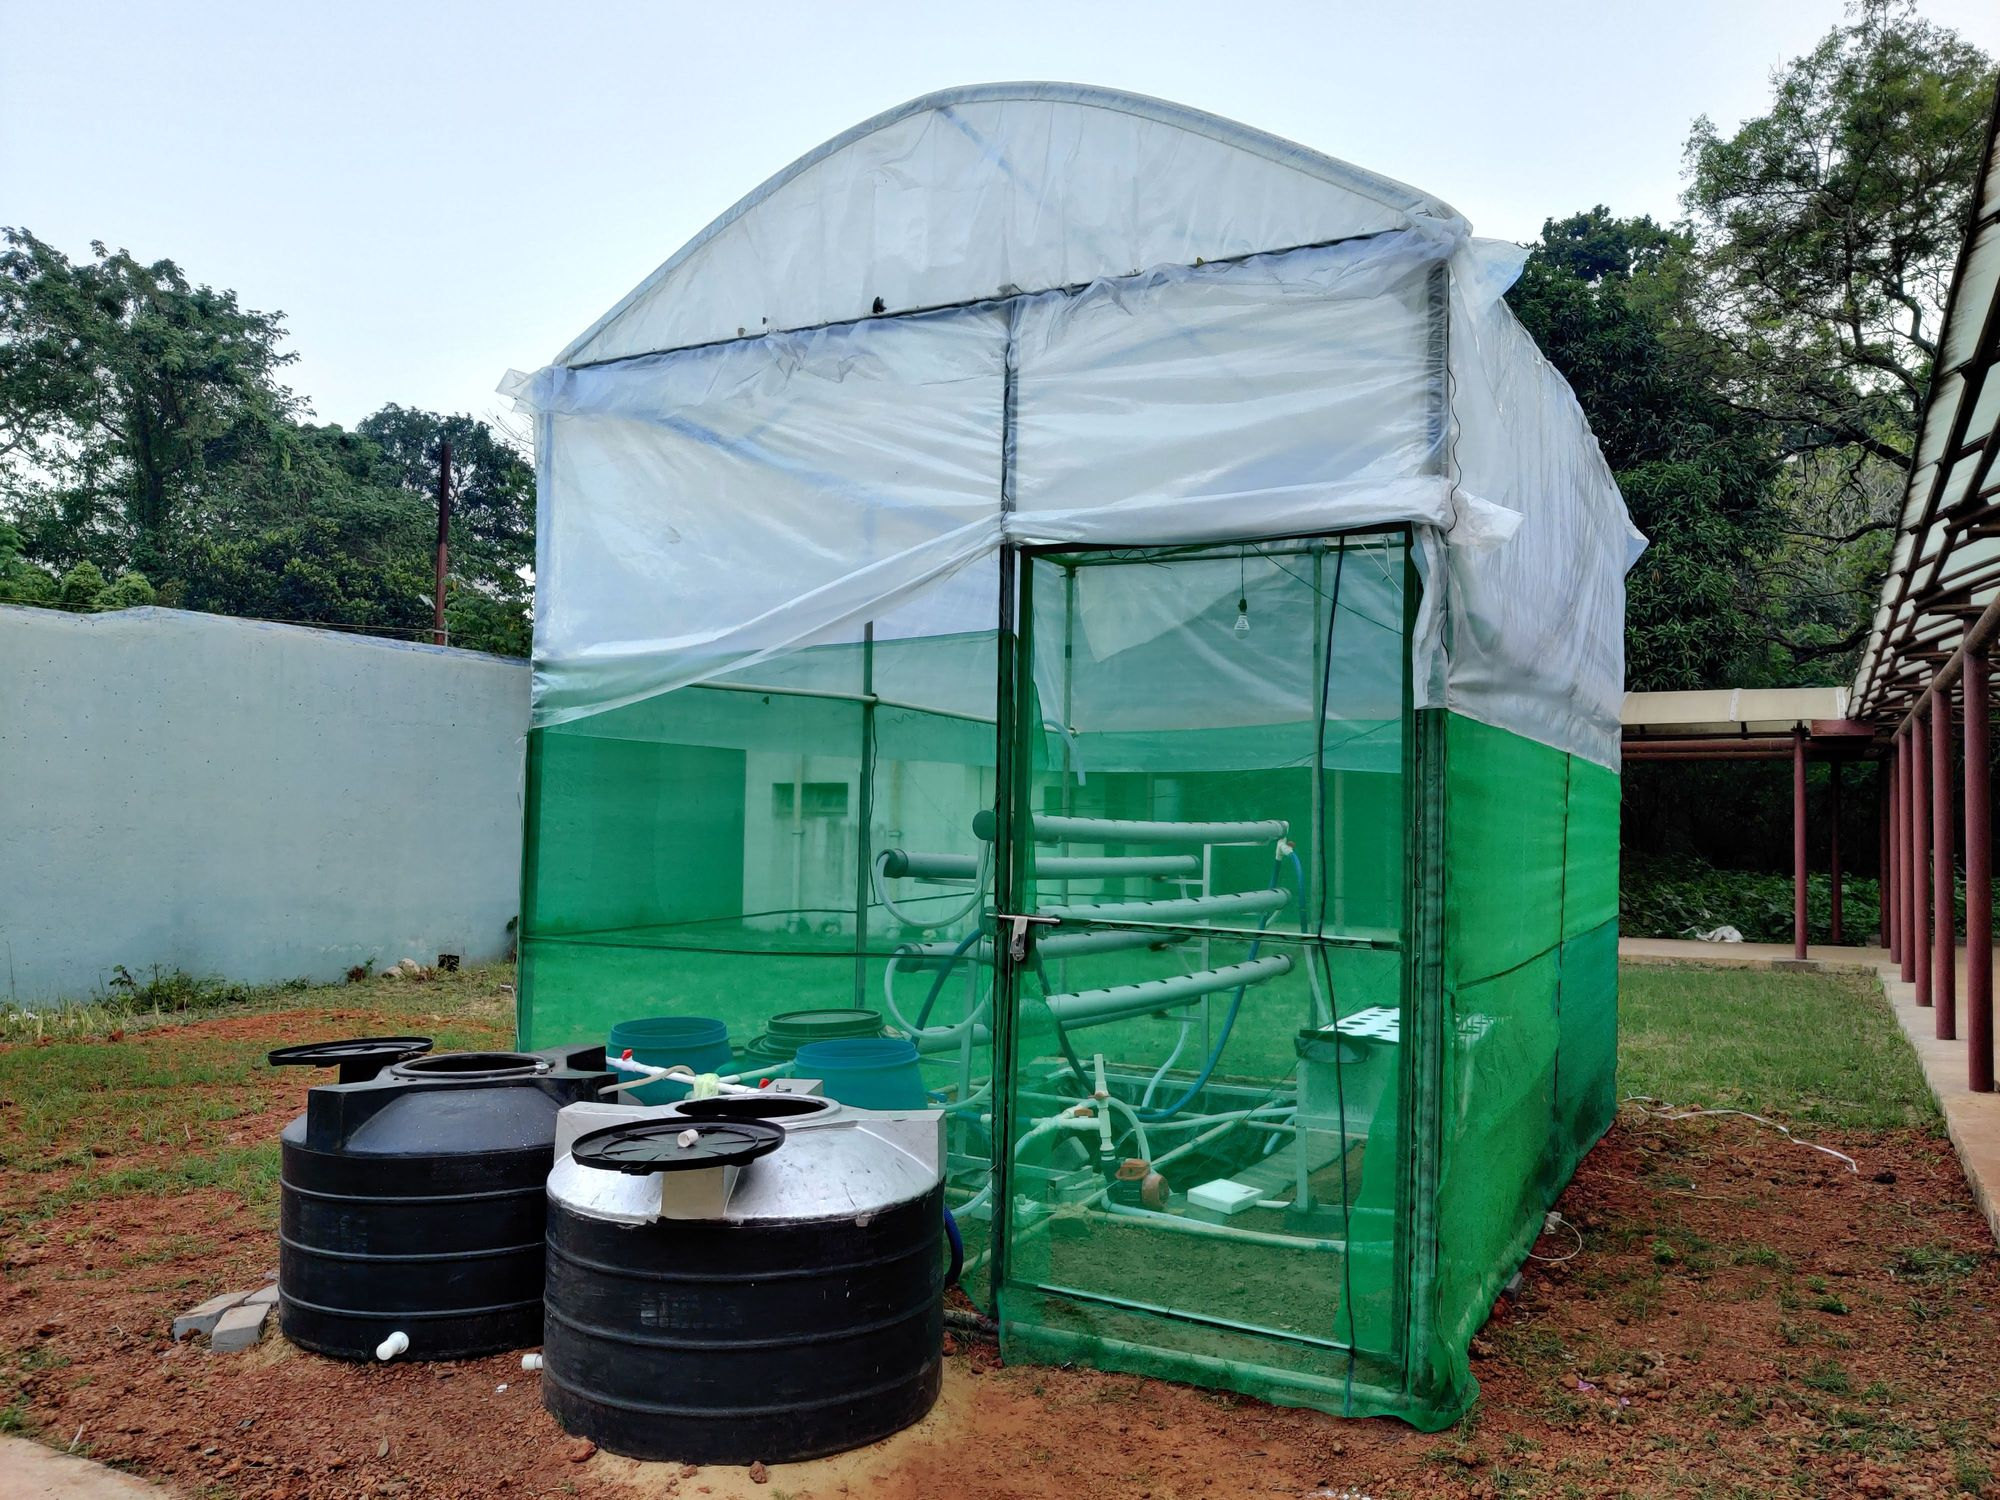 Greenhouse built on campus